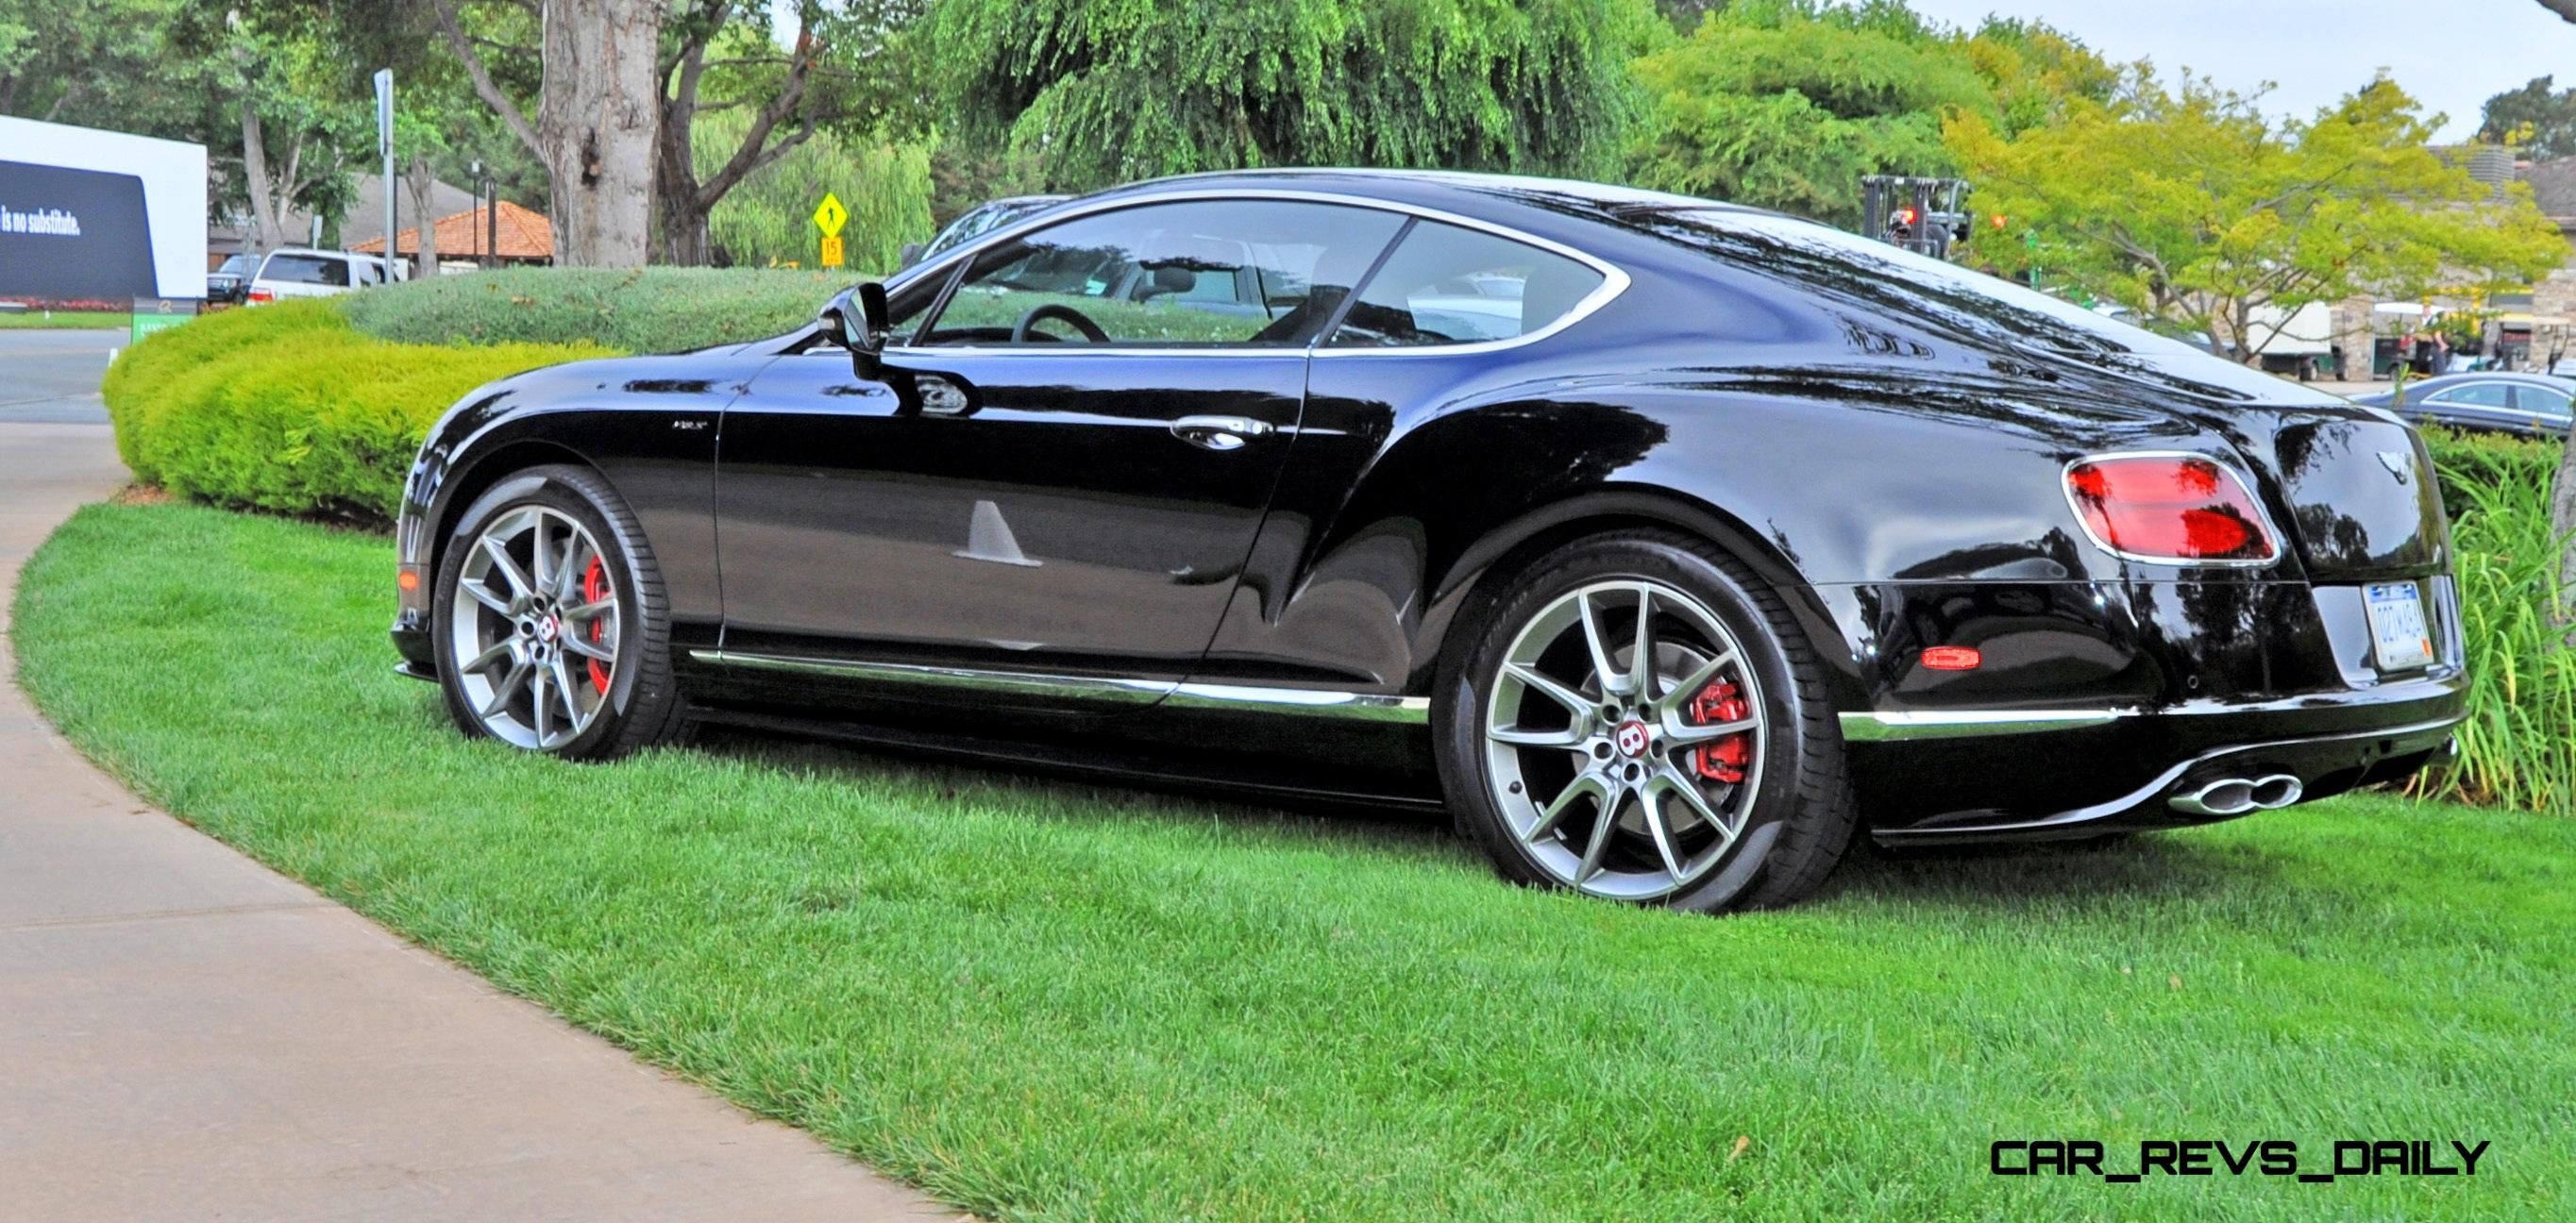 Superb Car Revs Daily.com 2015 Bentley Continental GT V8S Is Stunning In Black  Crystal Paintwork 30